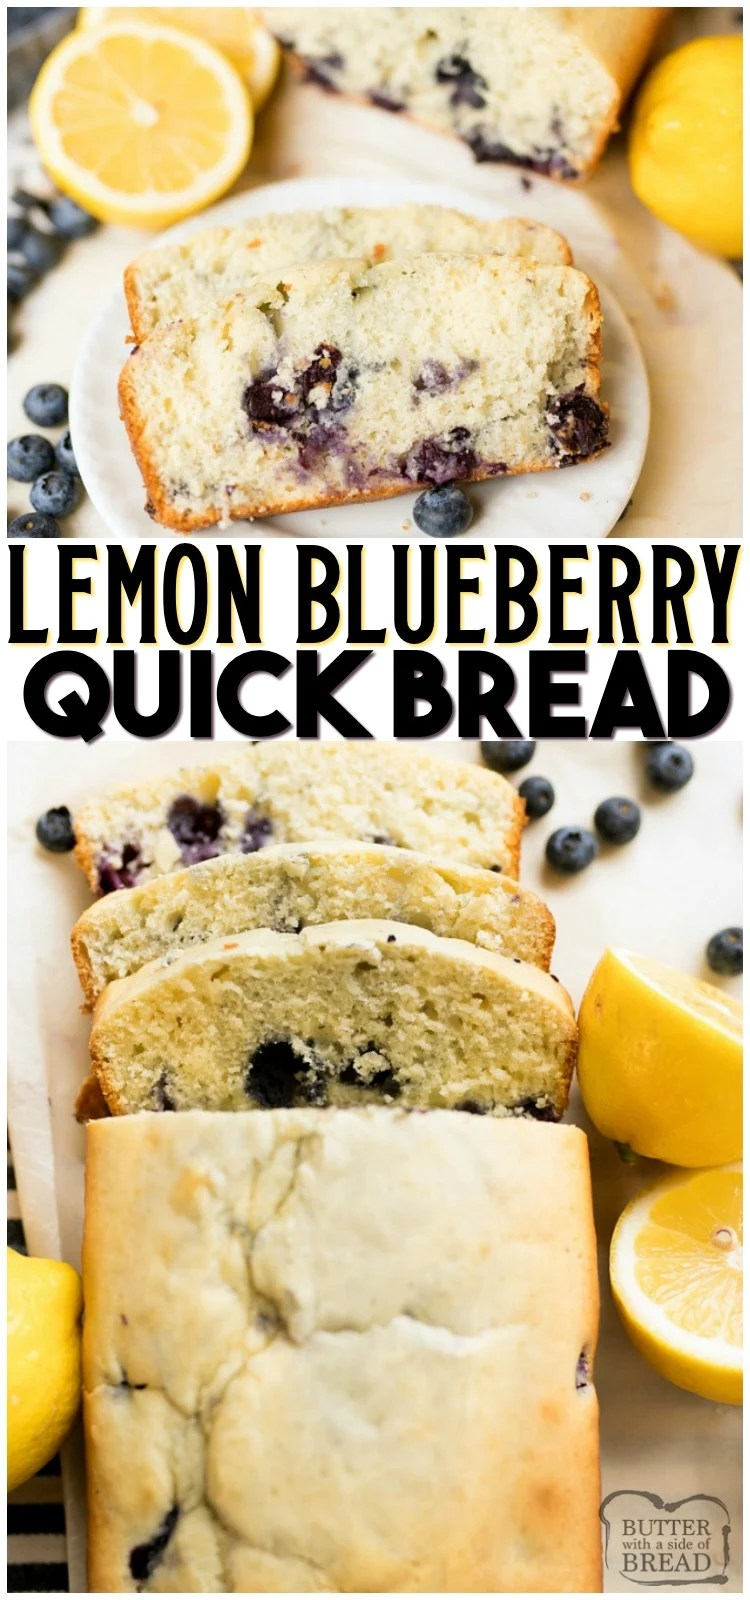 Lemon Blueberry Quick Bread is a deliciously moist and fresh quick bread recipe loaded with blueberries and bright lemon flavor. The quick bread is the perfect addition to any brunch menu! #lemon #blueberry #quickbread #bread #baking #brunch #recipe from BUTTER WITH A SIDE OF BREAD